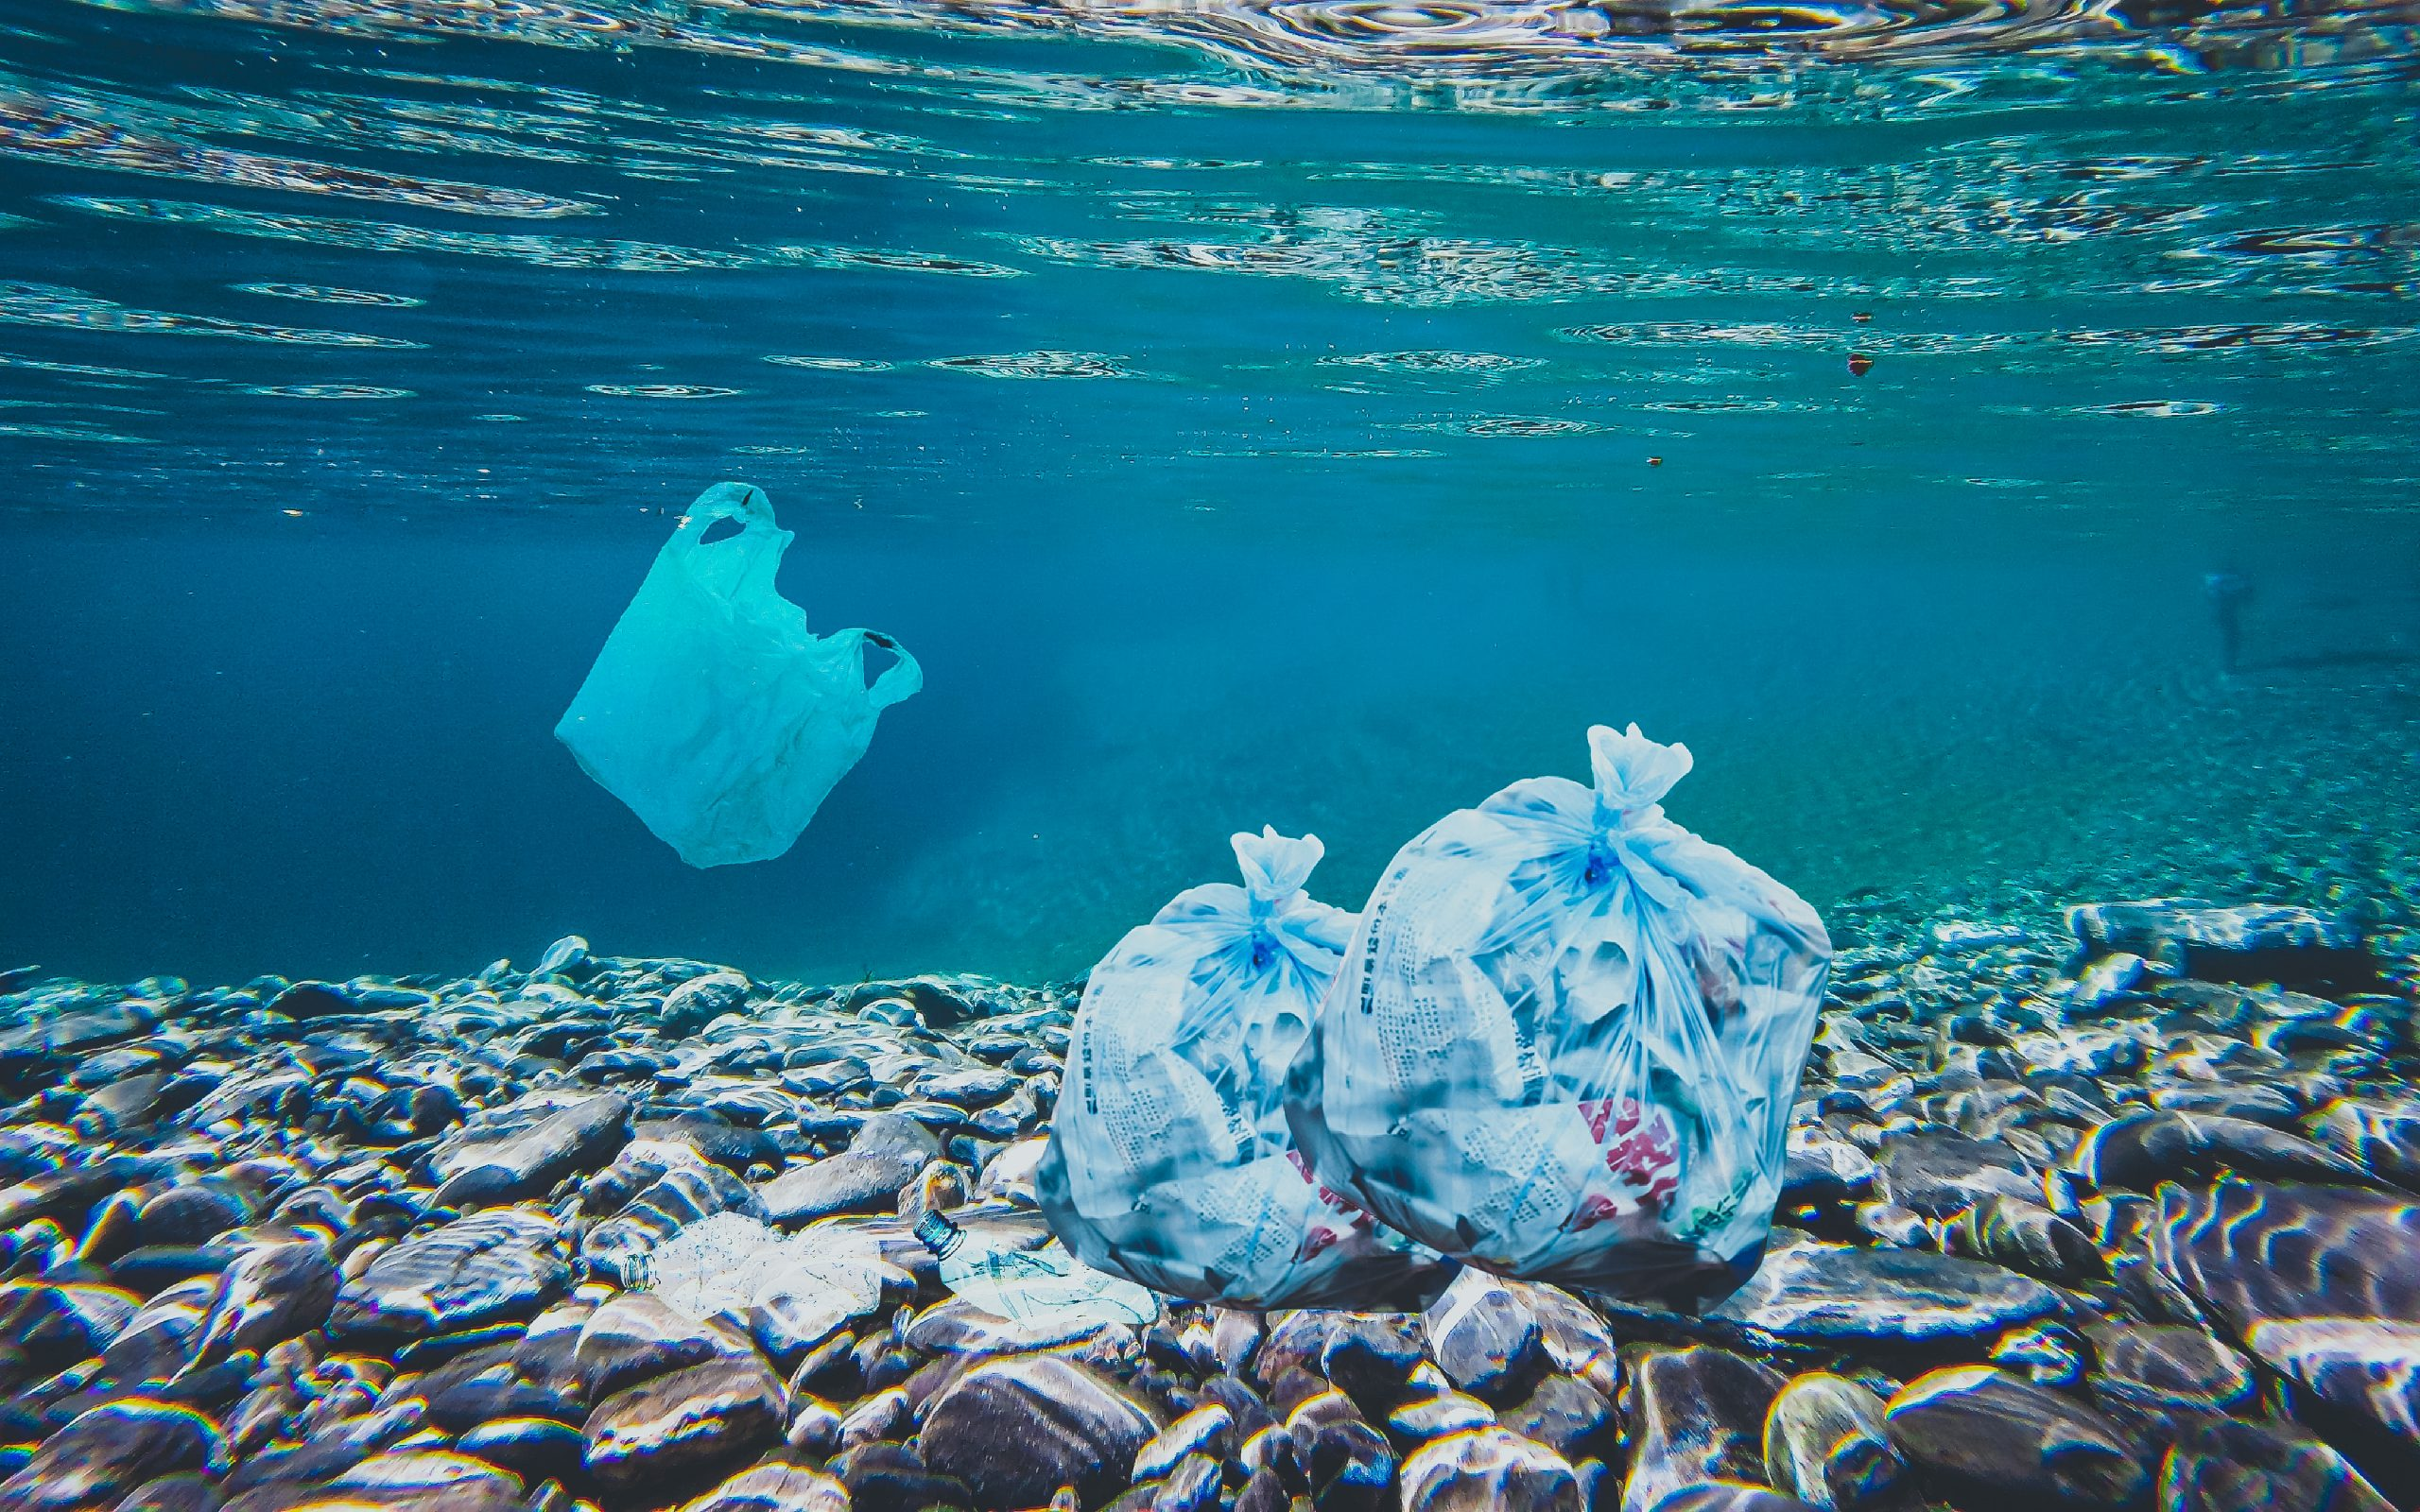 Plastic bags lodging in the underwater